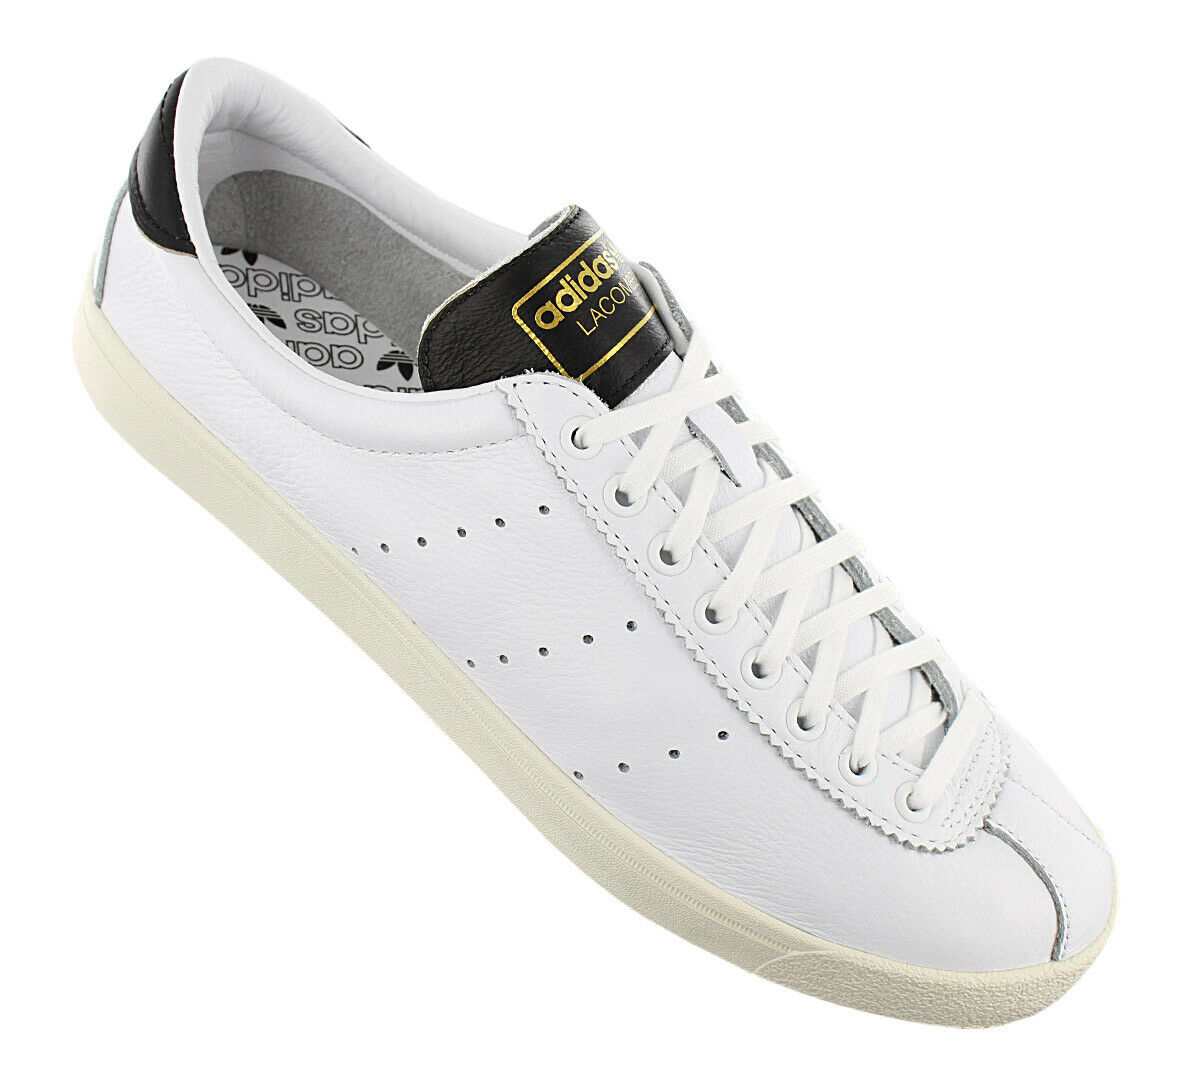 NEW adidas Originals Lacombe Leather DB3013 Men´s shoes Trainers Sneakers SALE